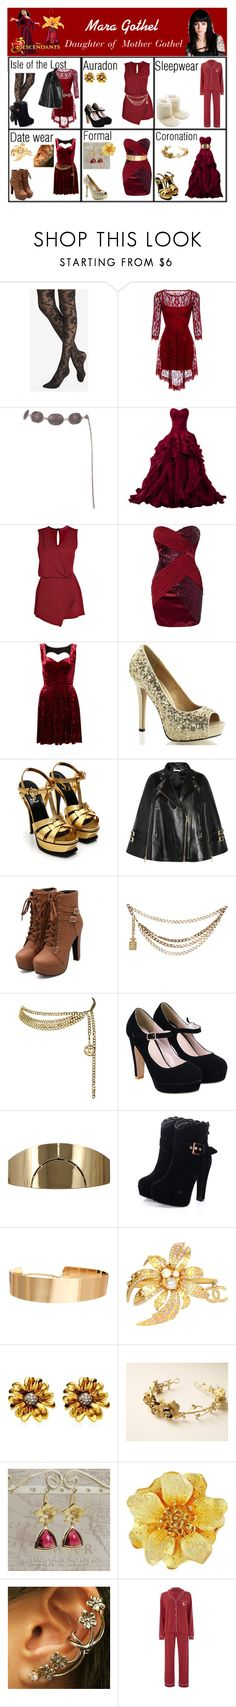 """""""Mara Gothel. Daughter of Mother Gothel"""" by elmoakepoke ❤ liked on Polyvore featuring ...Lost, Disney, Express, Collezione Alessandro, Boohoo, Elise Ryan, Topshop, Yves Saint Laurent, Givenchy and Chanel"""